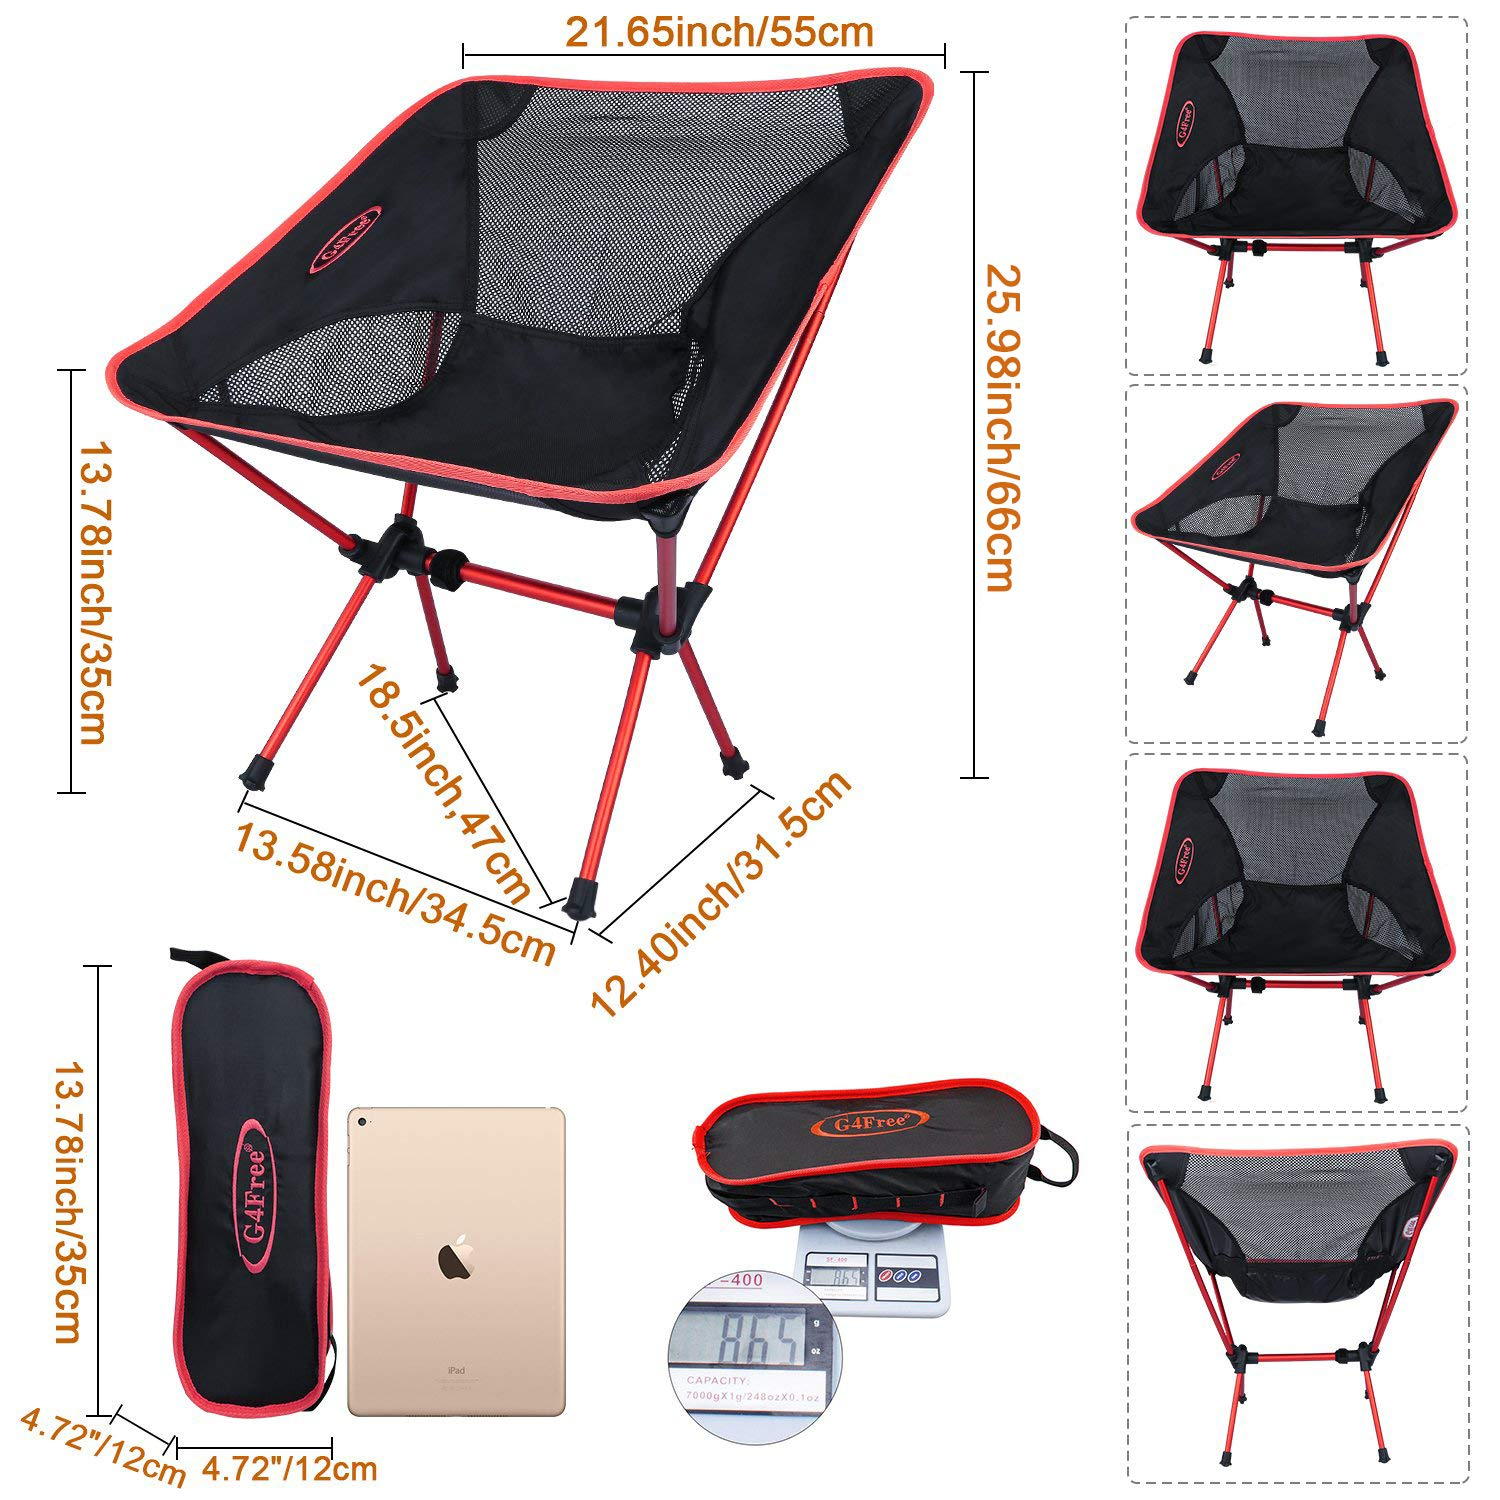 G4Free Portable Camping Chair Lightweight Folding Chair for Backpacking Picnic Beach Festival Hiking,Low Back Camp Chairs